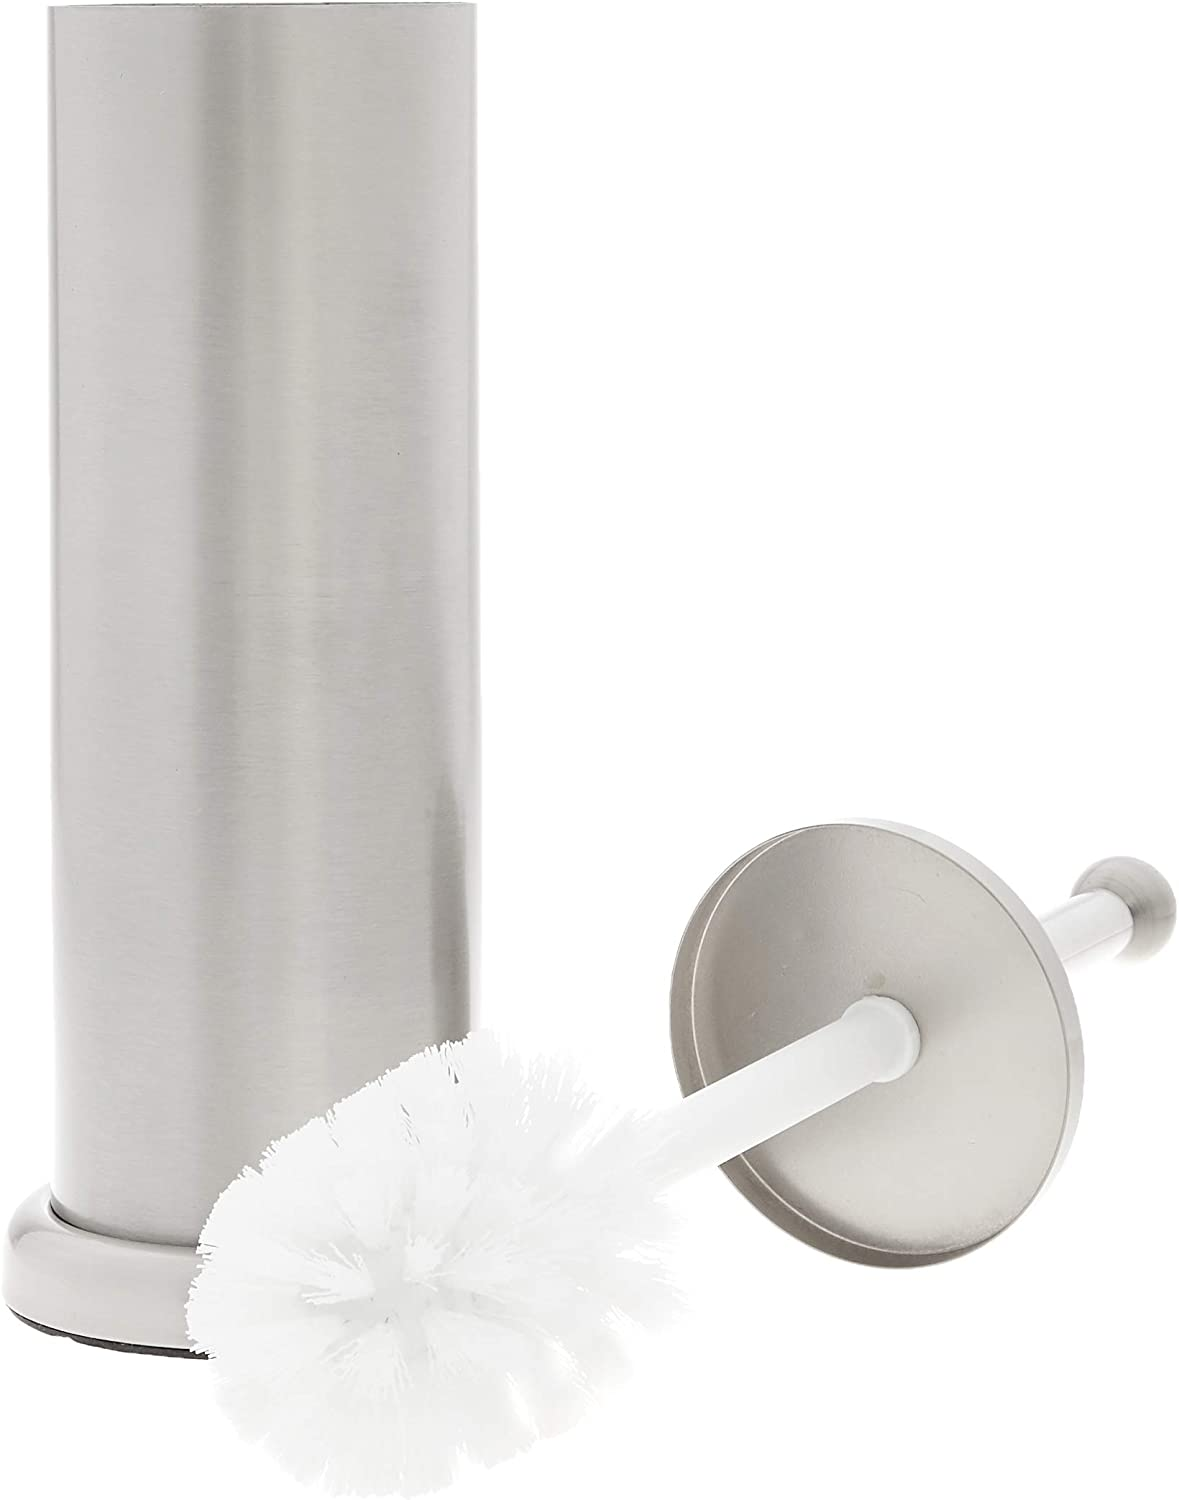 Basics Rustic Bathroom Accessory Collection - Toilet Brush Holder, Small: Home & Kitchen